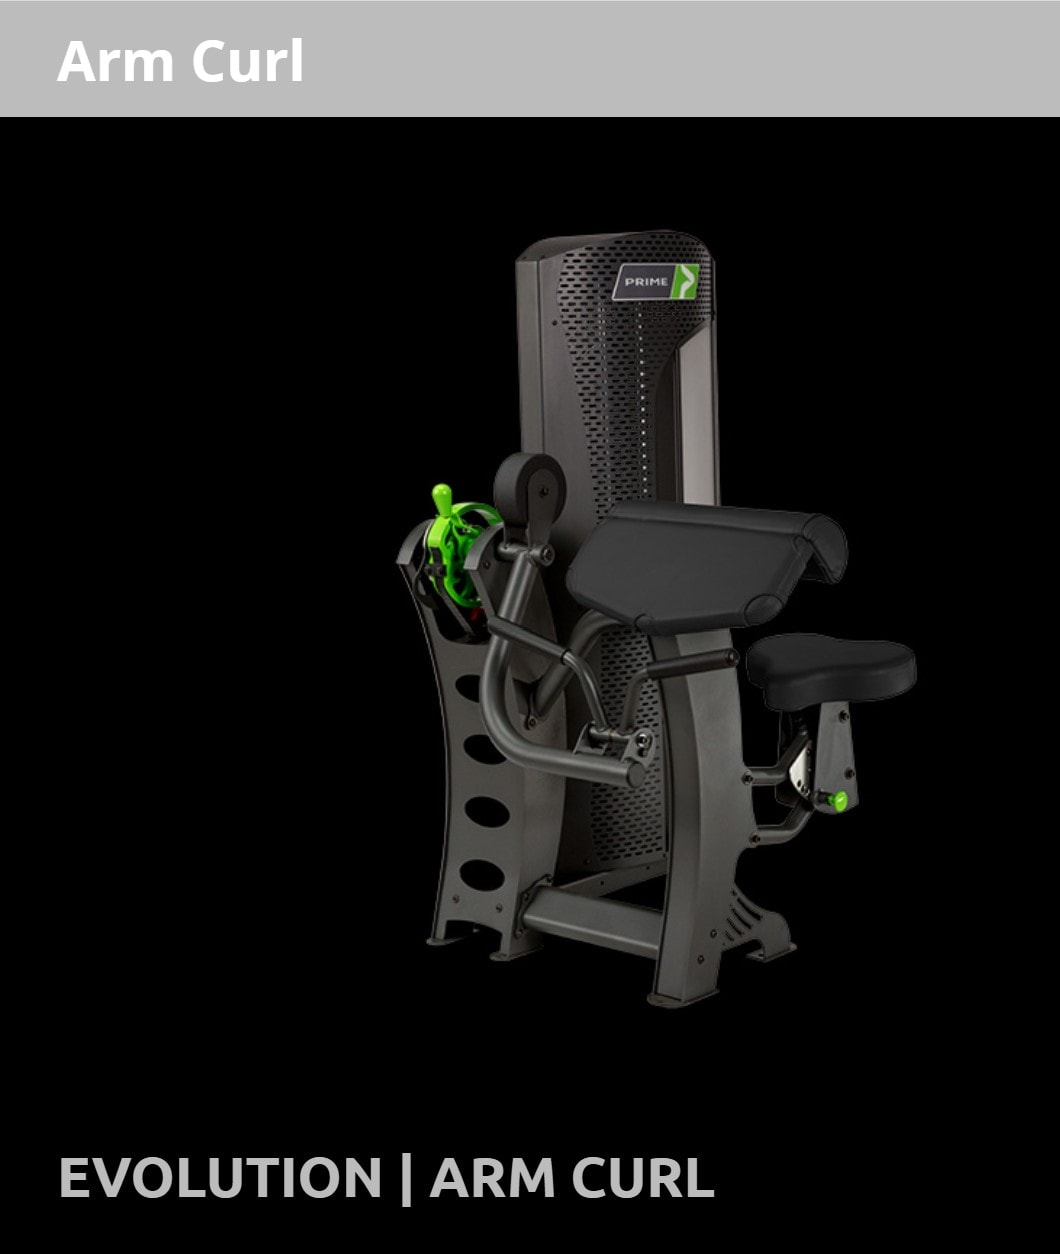 Arm Curl for use with a gym membership in Plano